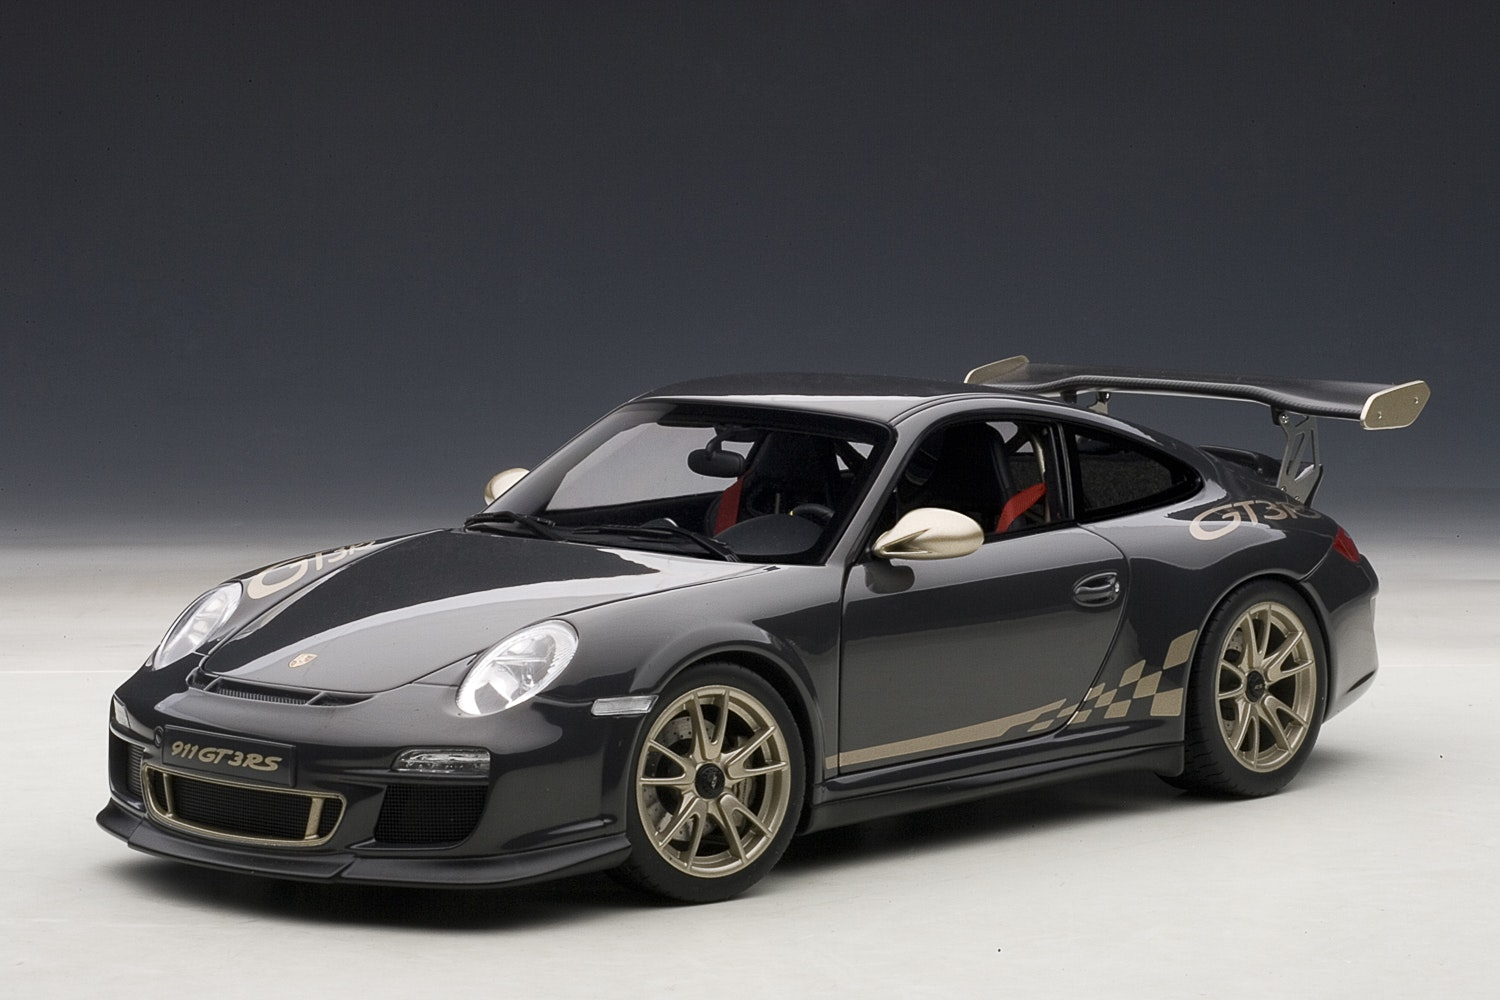 Porsche 911 (997) GT3 RS, Grey Black w/White Gold Metallic Stripes